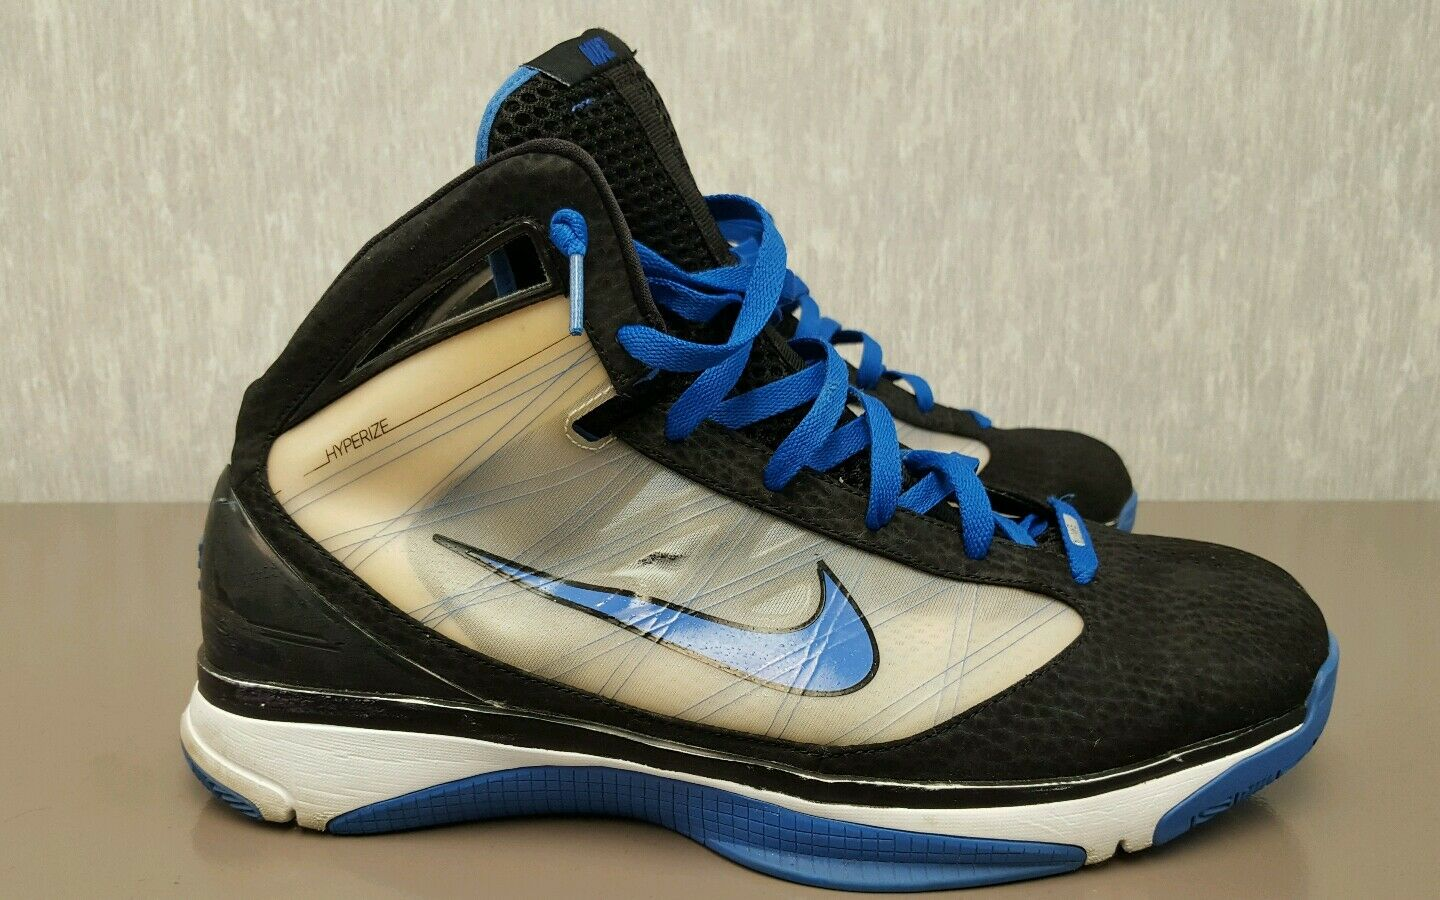 Nike Hyperize, Homme Basketball Chaussures, 367173 041,